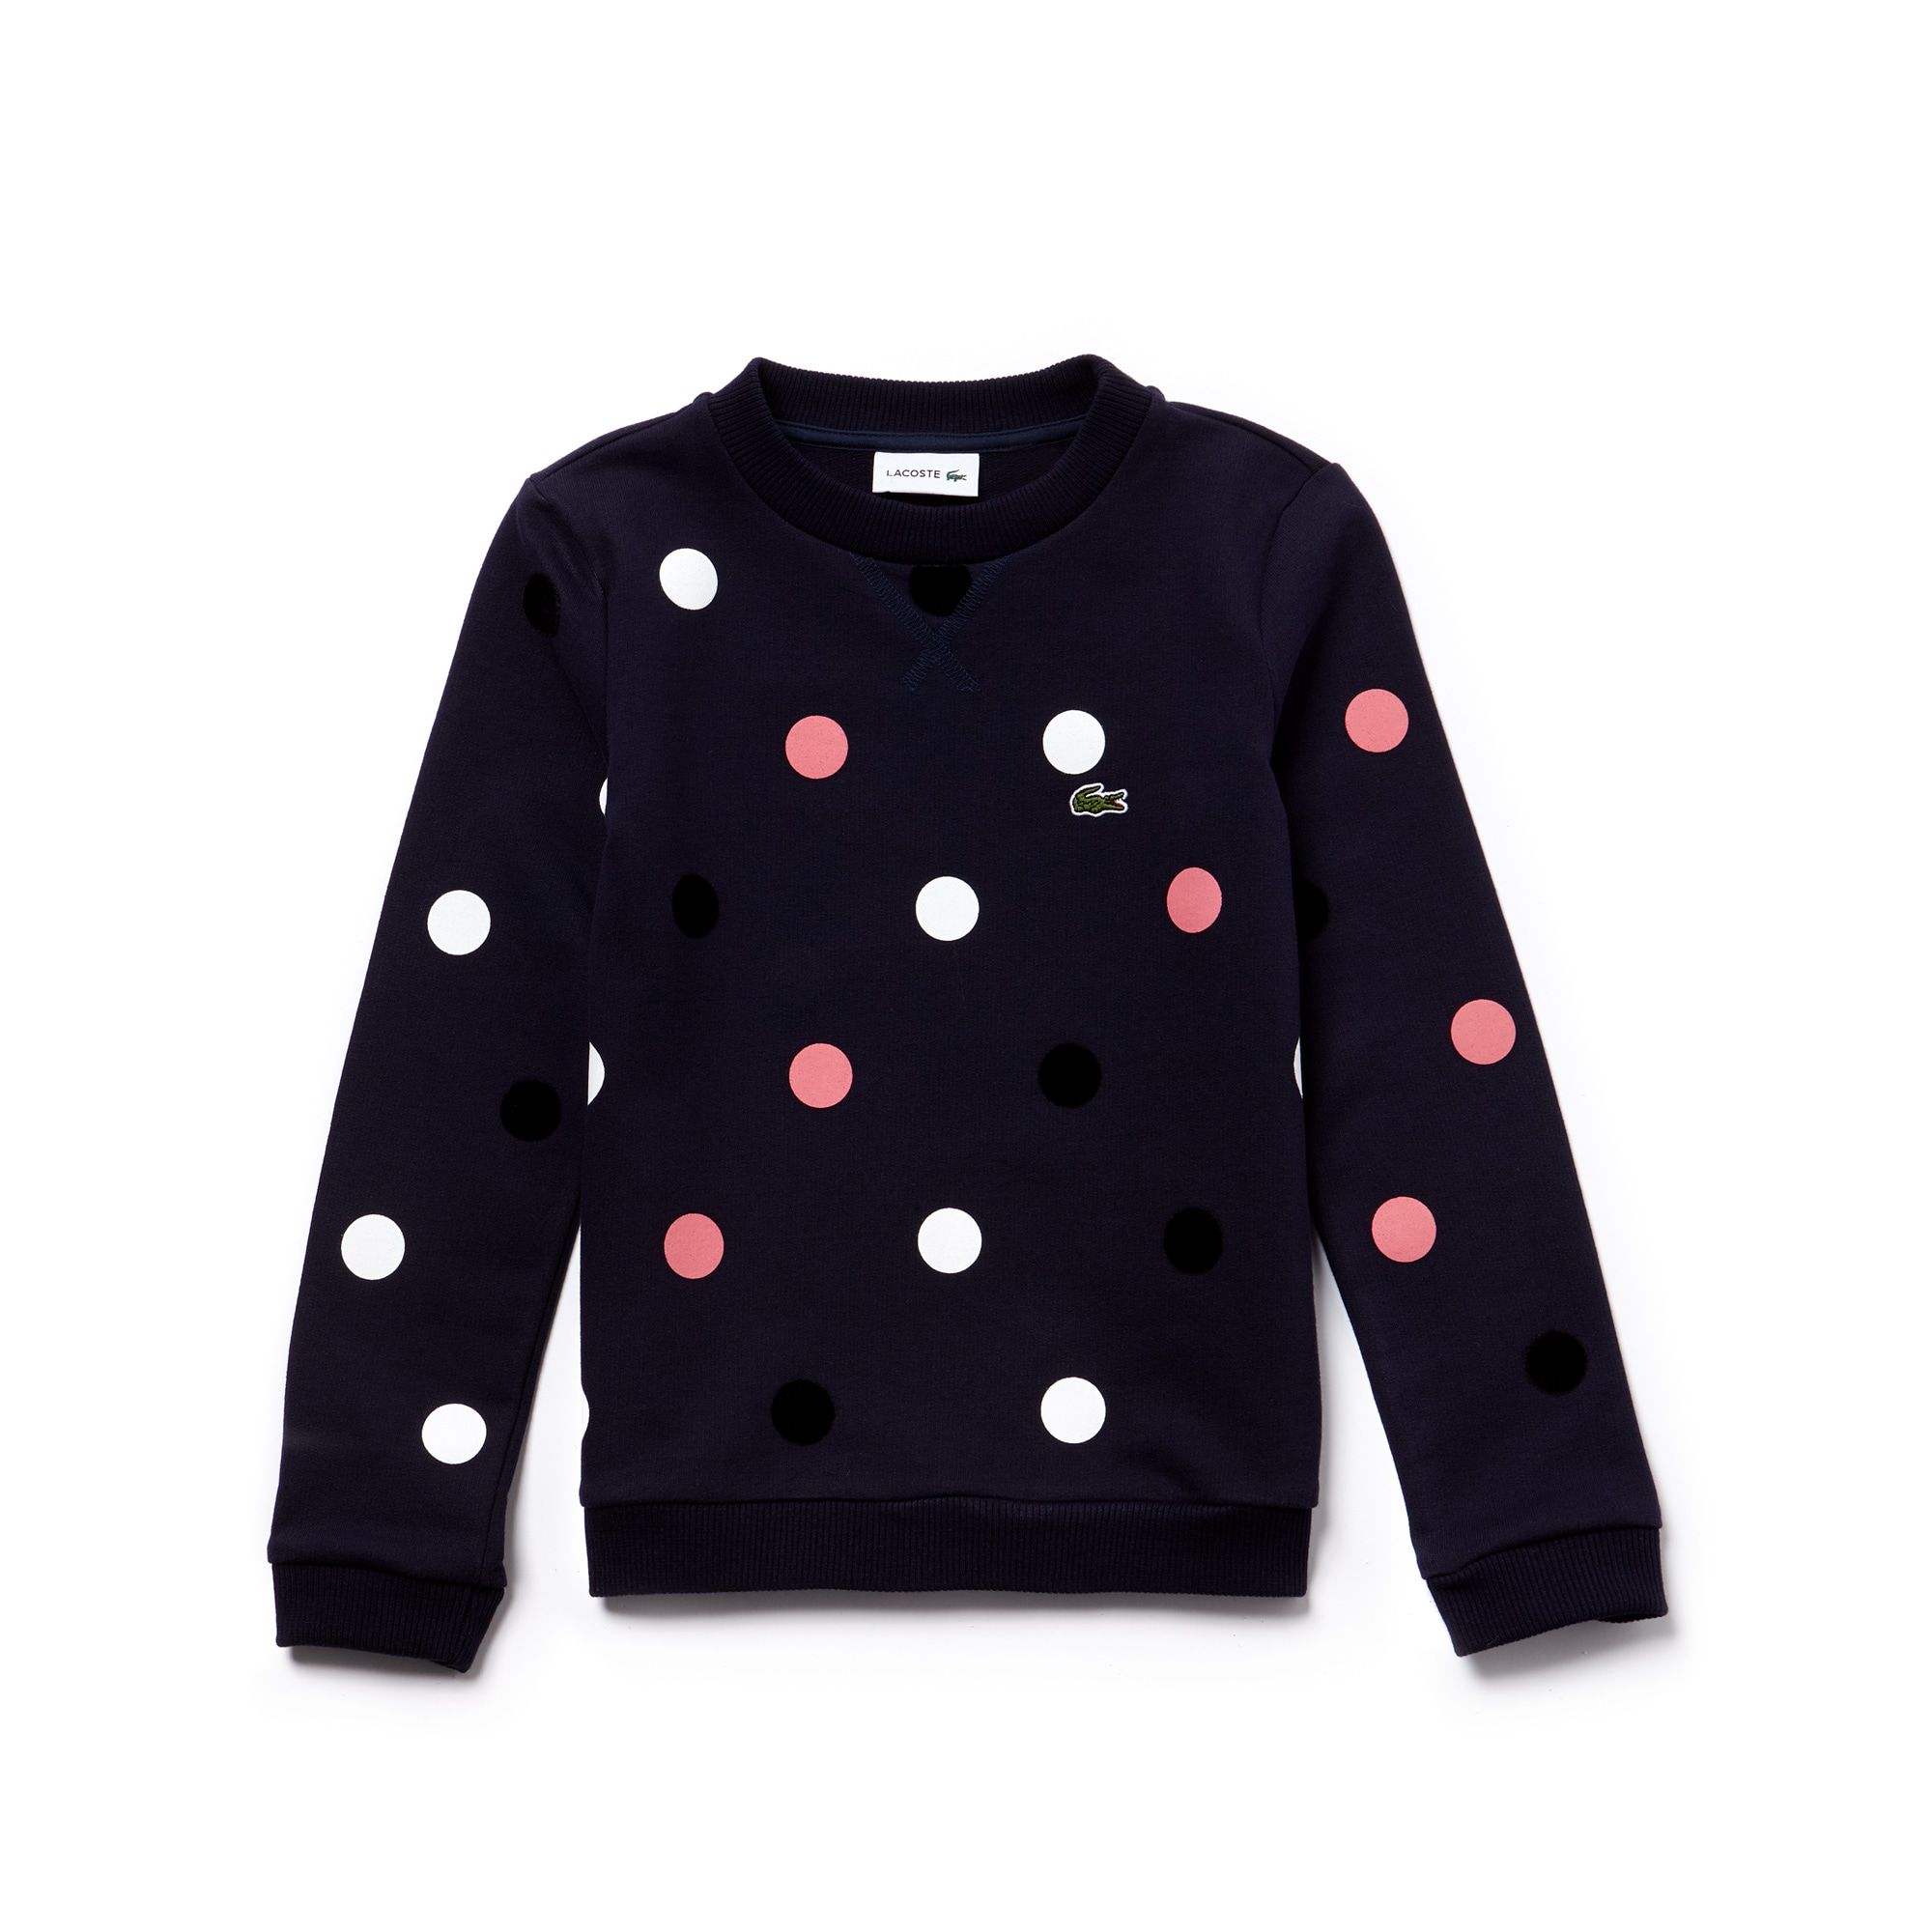 Sweatshirt Fille en molleton de coton stretch à pois